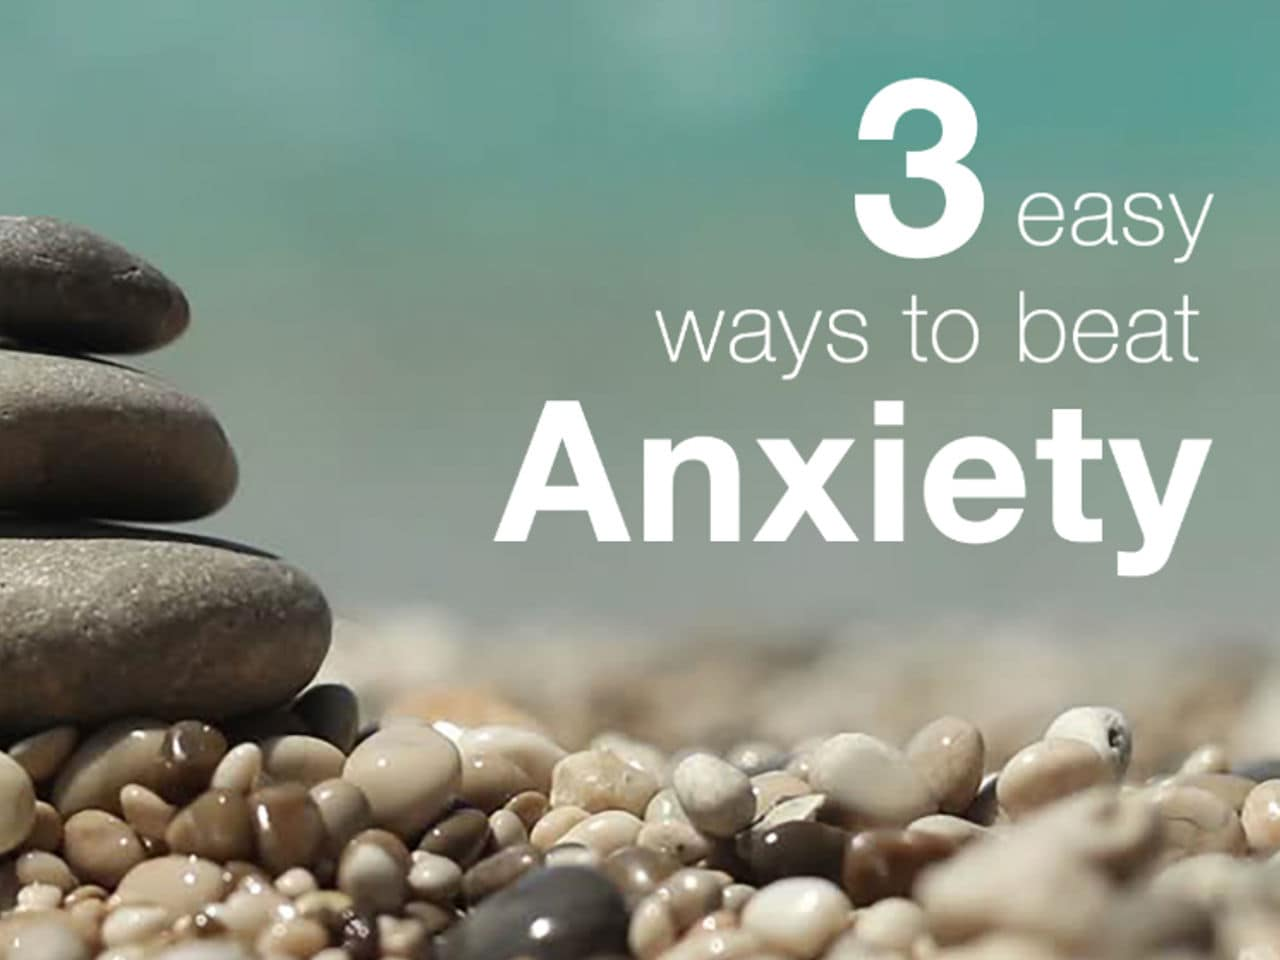 3 Quick Things to do when you feel Anxious or Unsettled